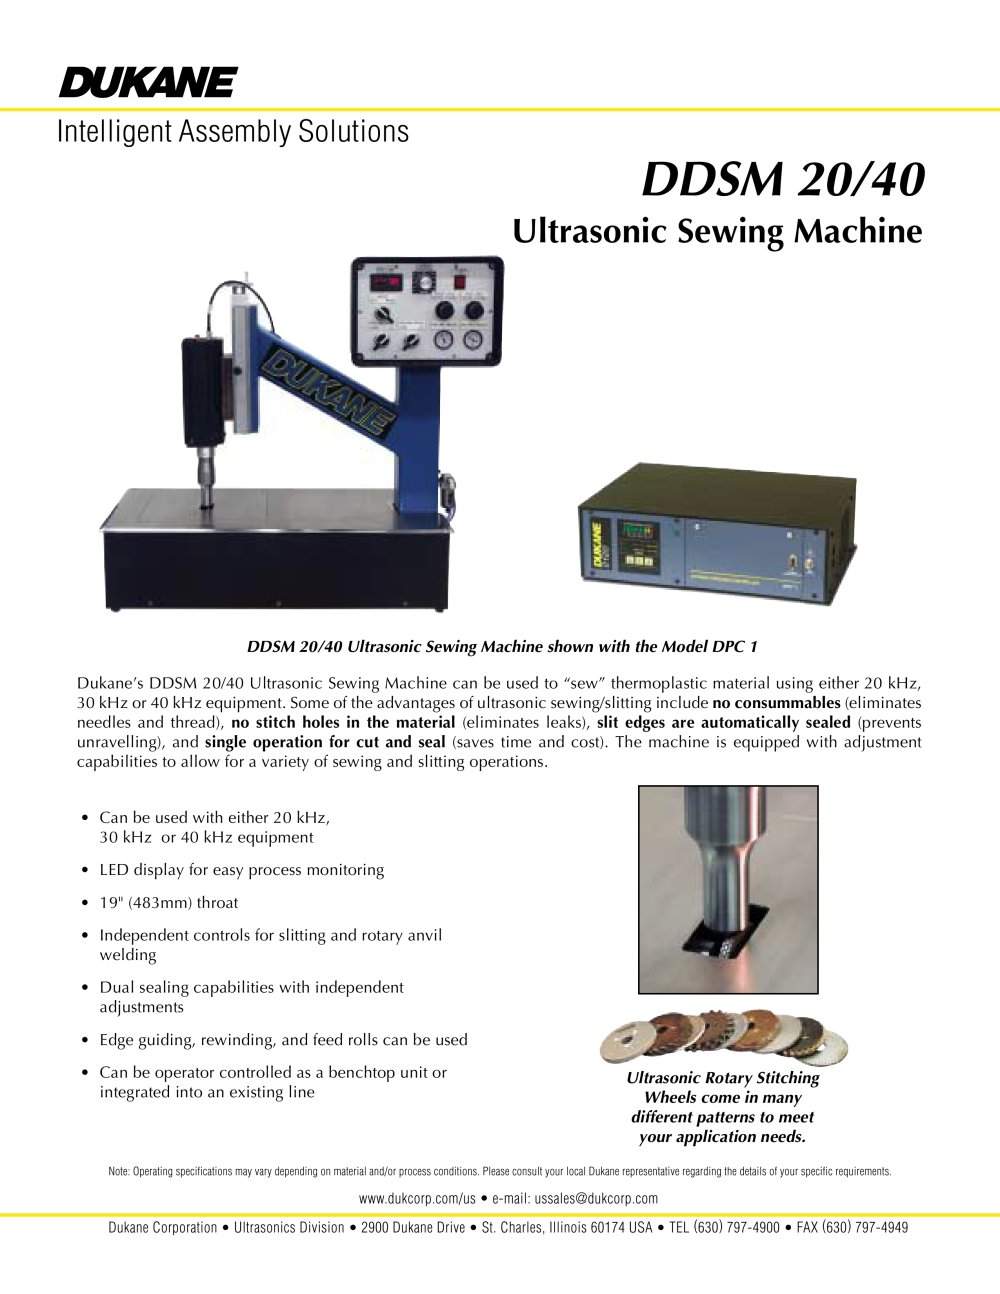 Ddsm 20 40 Ultrasonic Sewing Machine Dukane Intelligent Assembly Welding Diagram 1 2 Pages